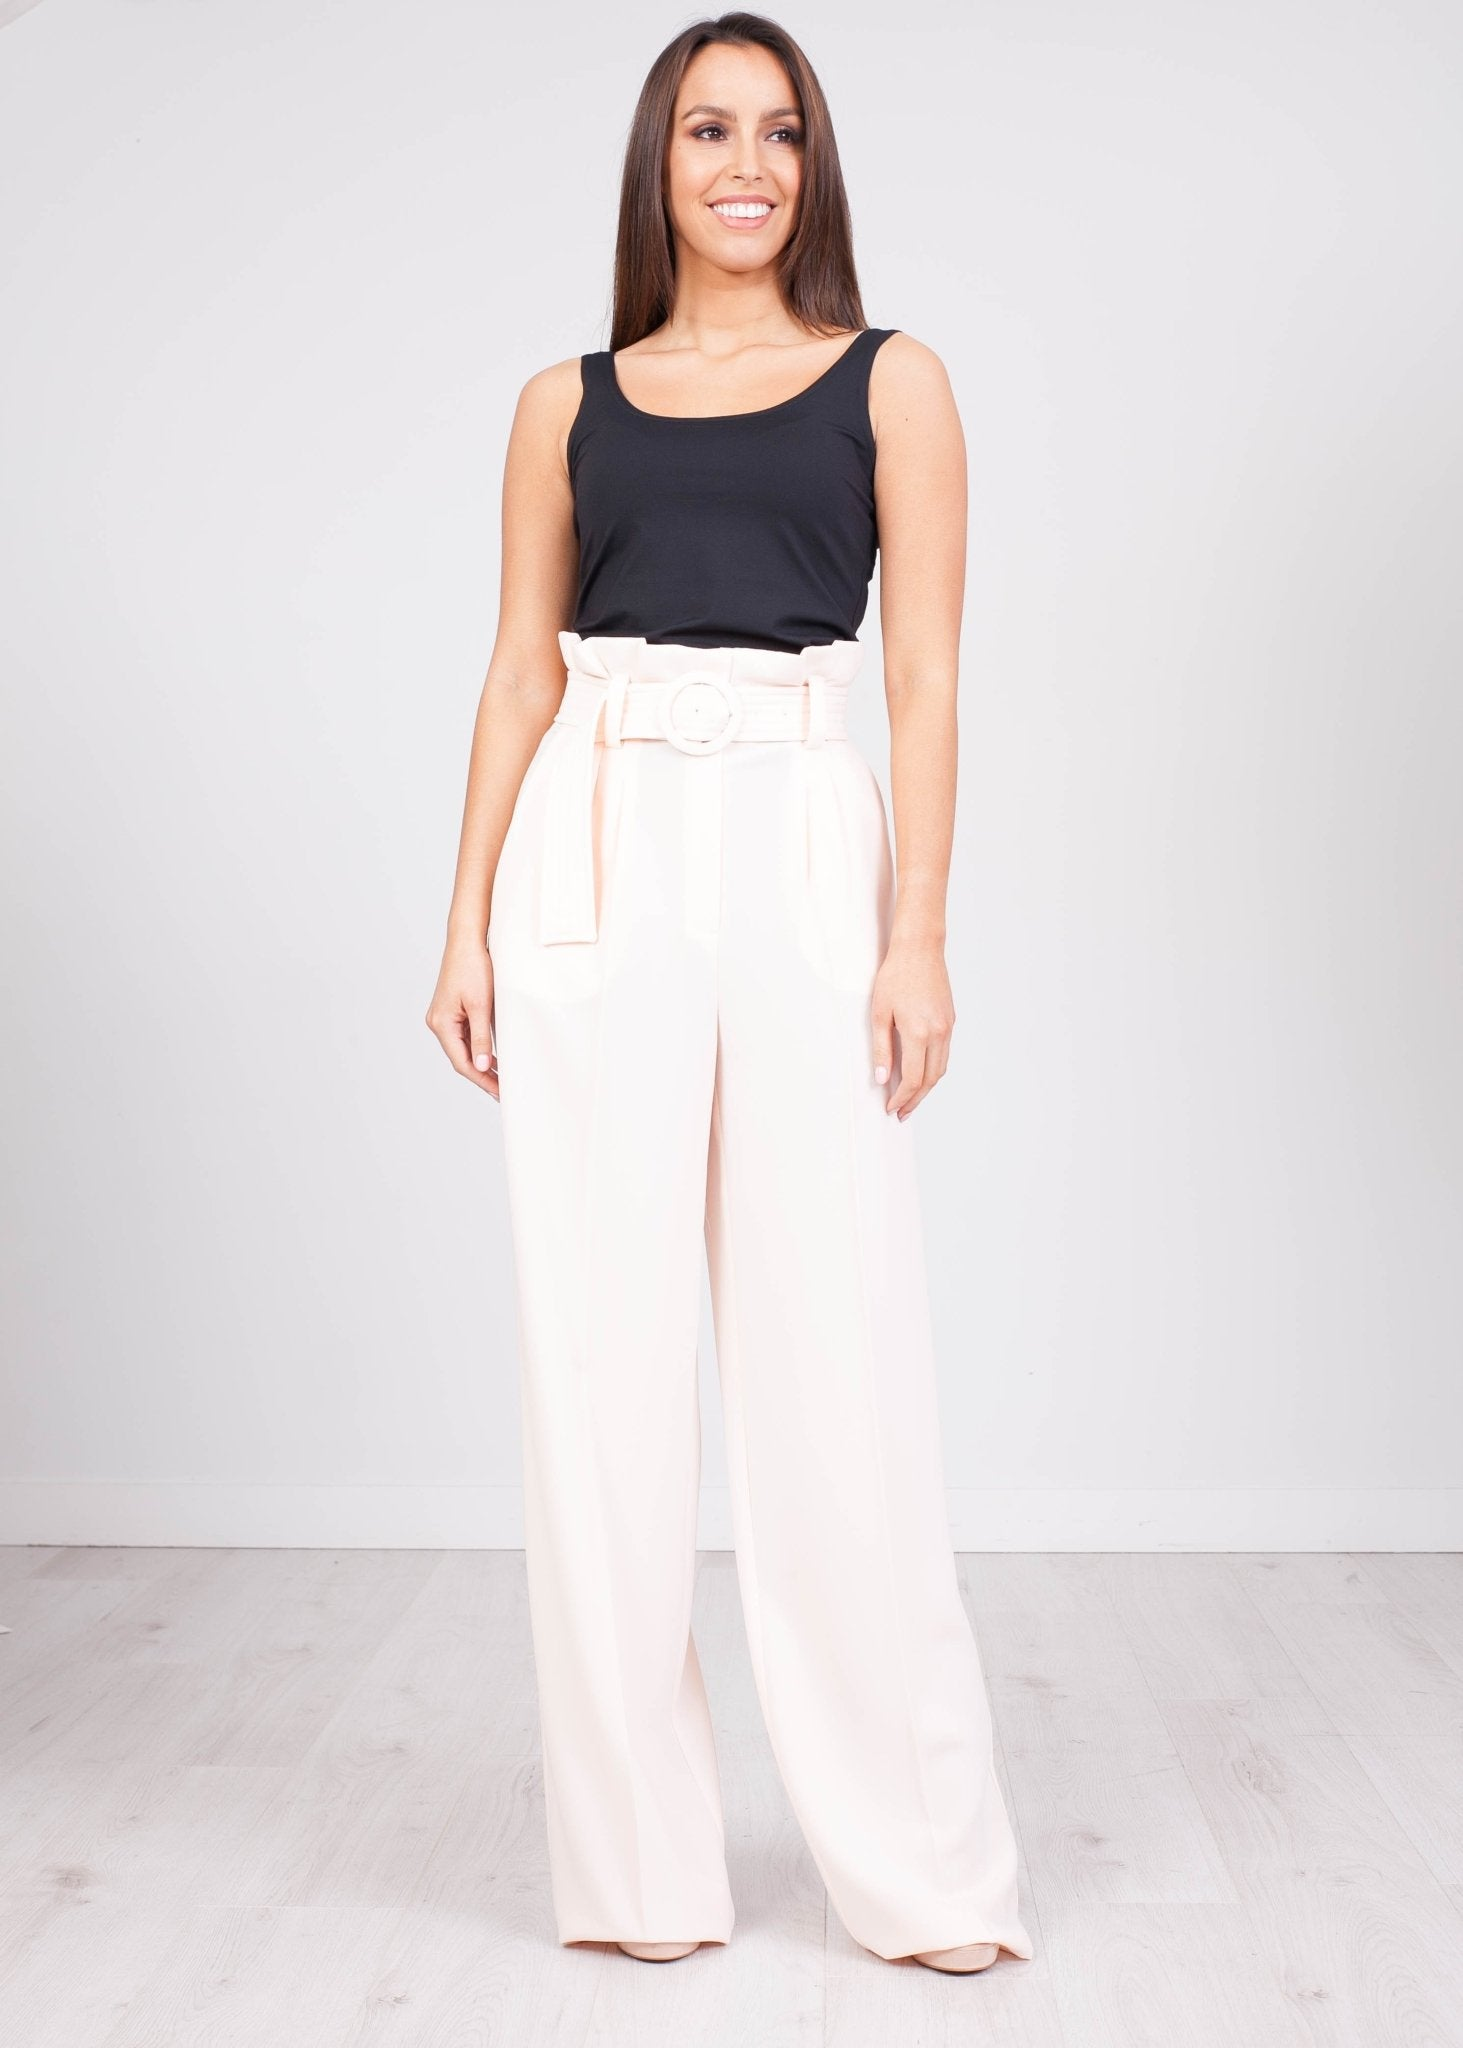 Eva Blush Trousers - The Walk in Wardrobe